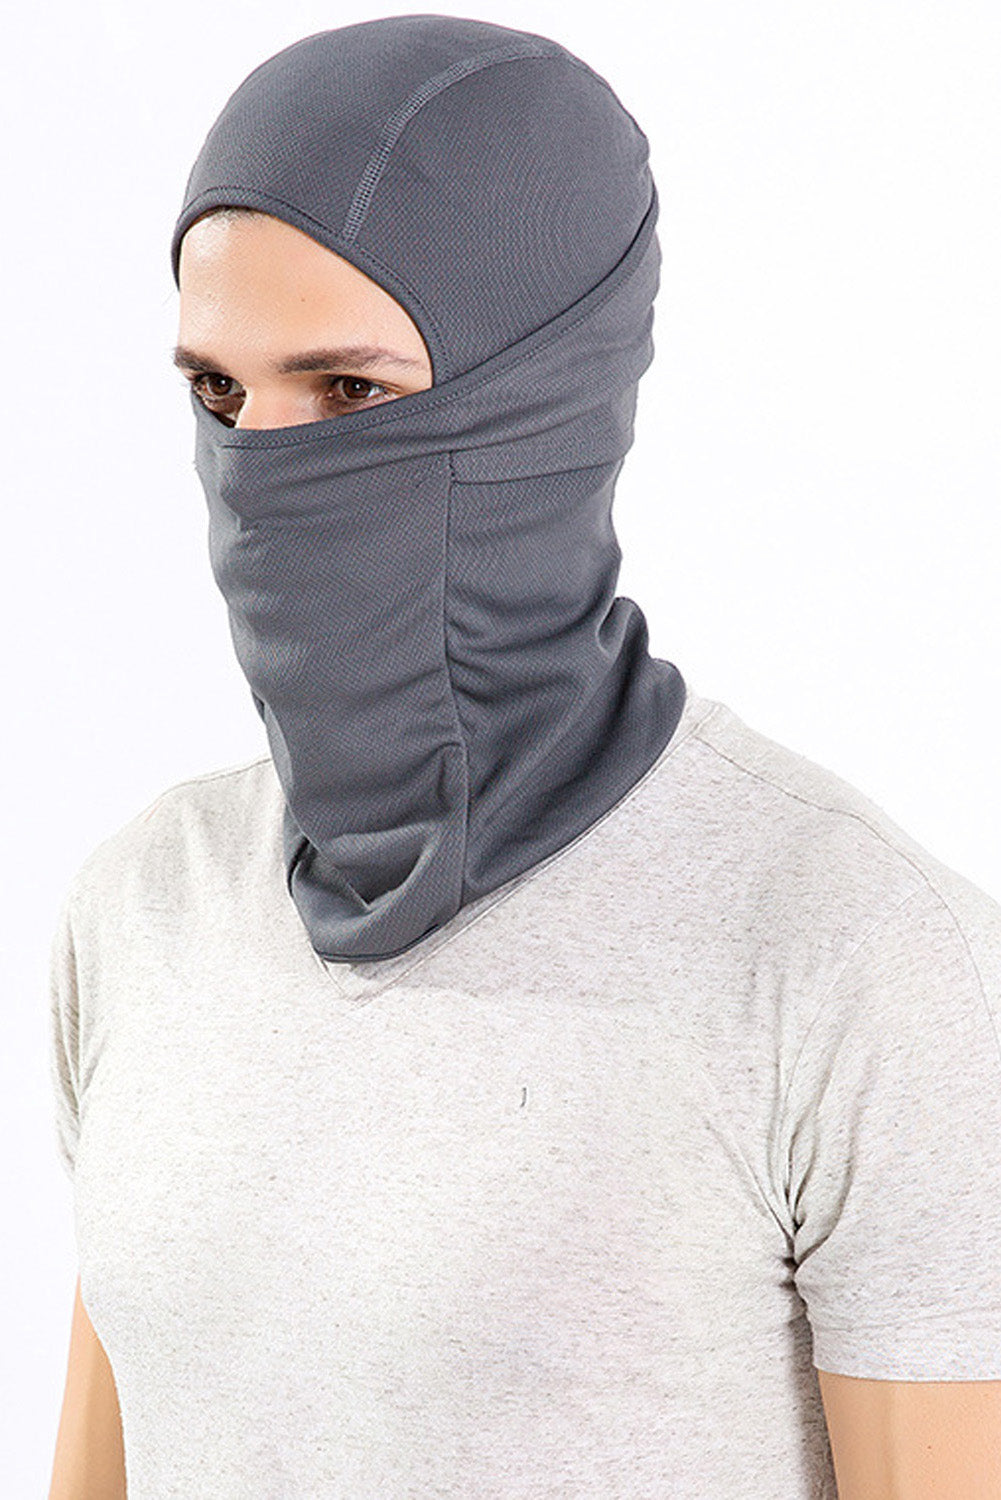 Gray Breathable Dustproof Face Mask Cycling Helmet Balaclava